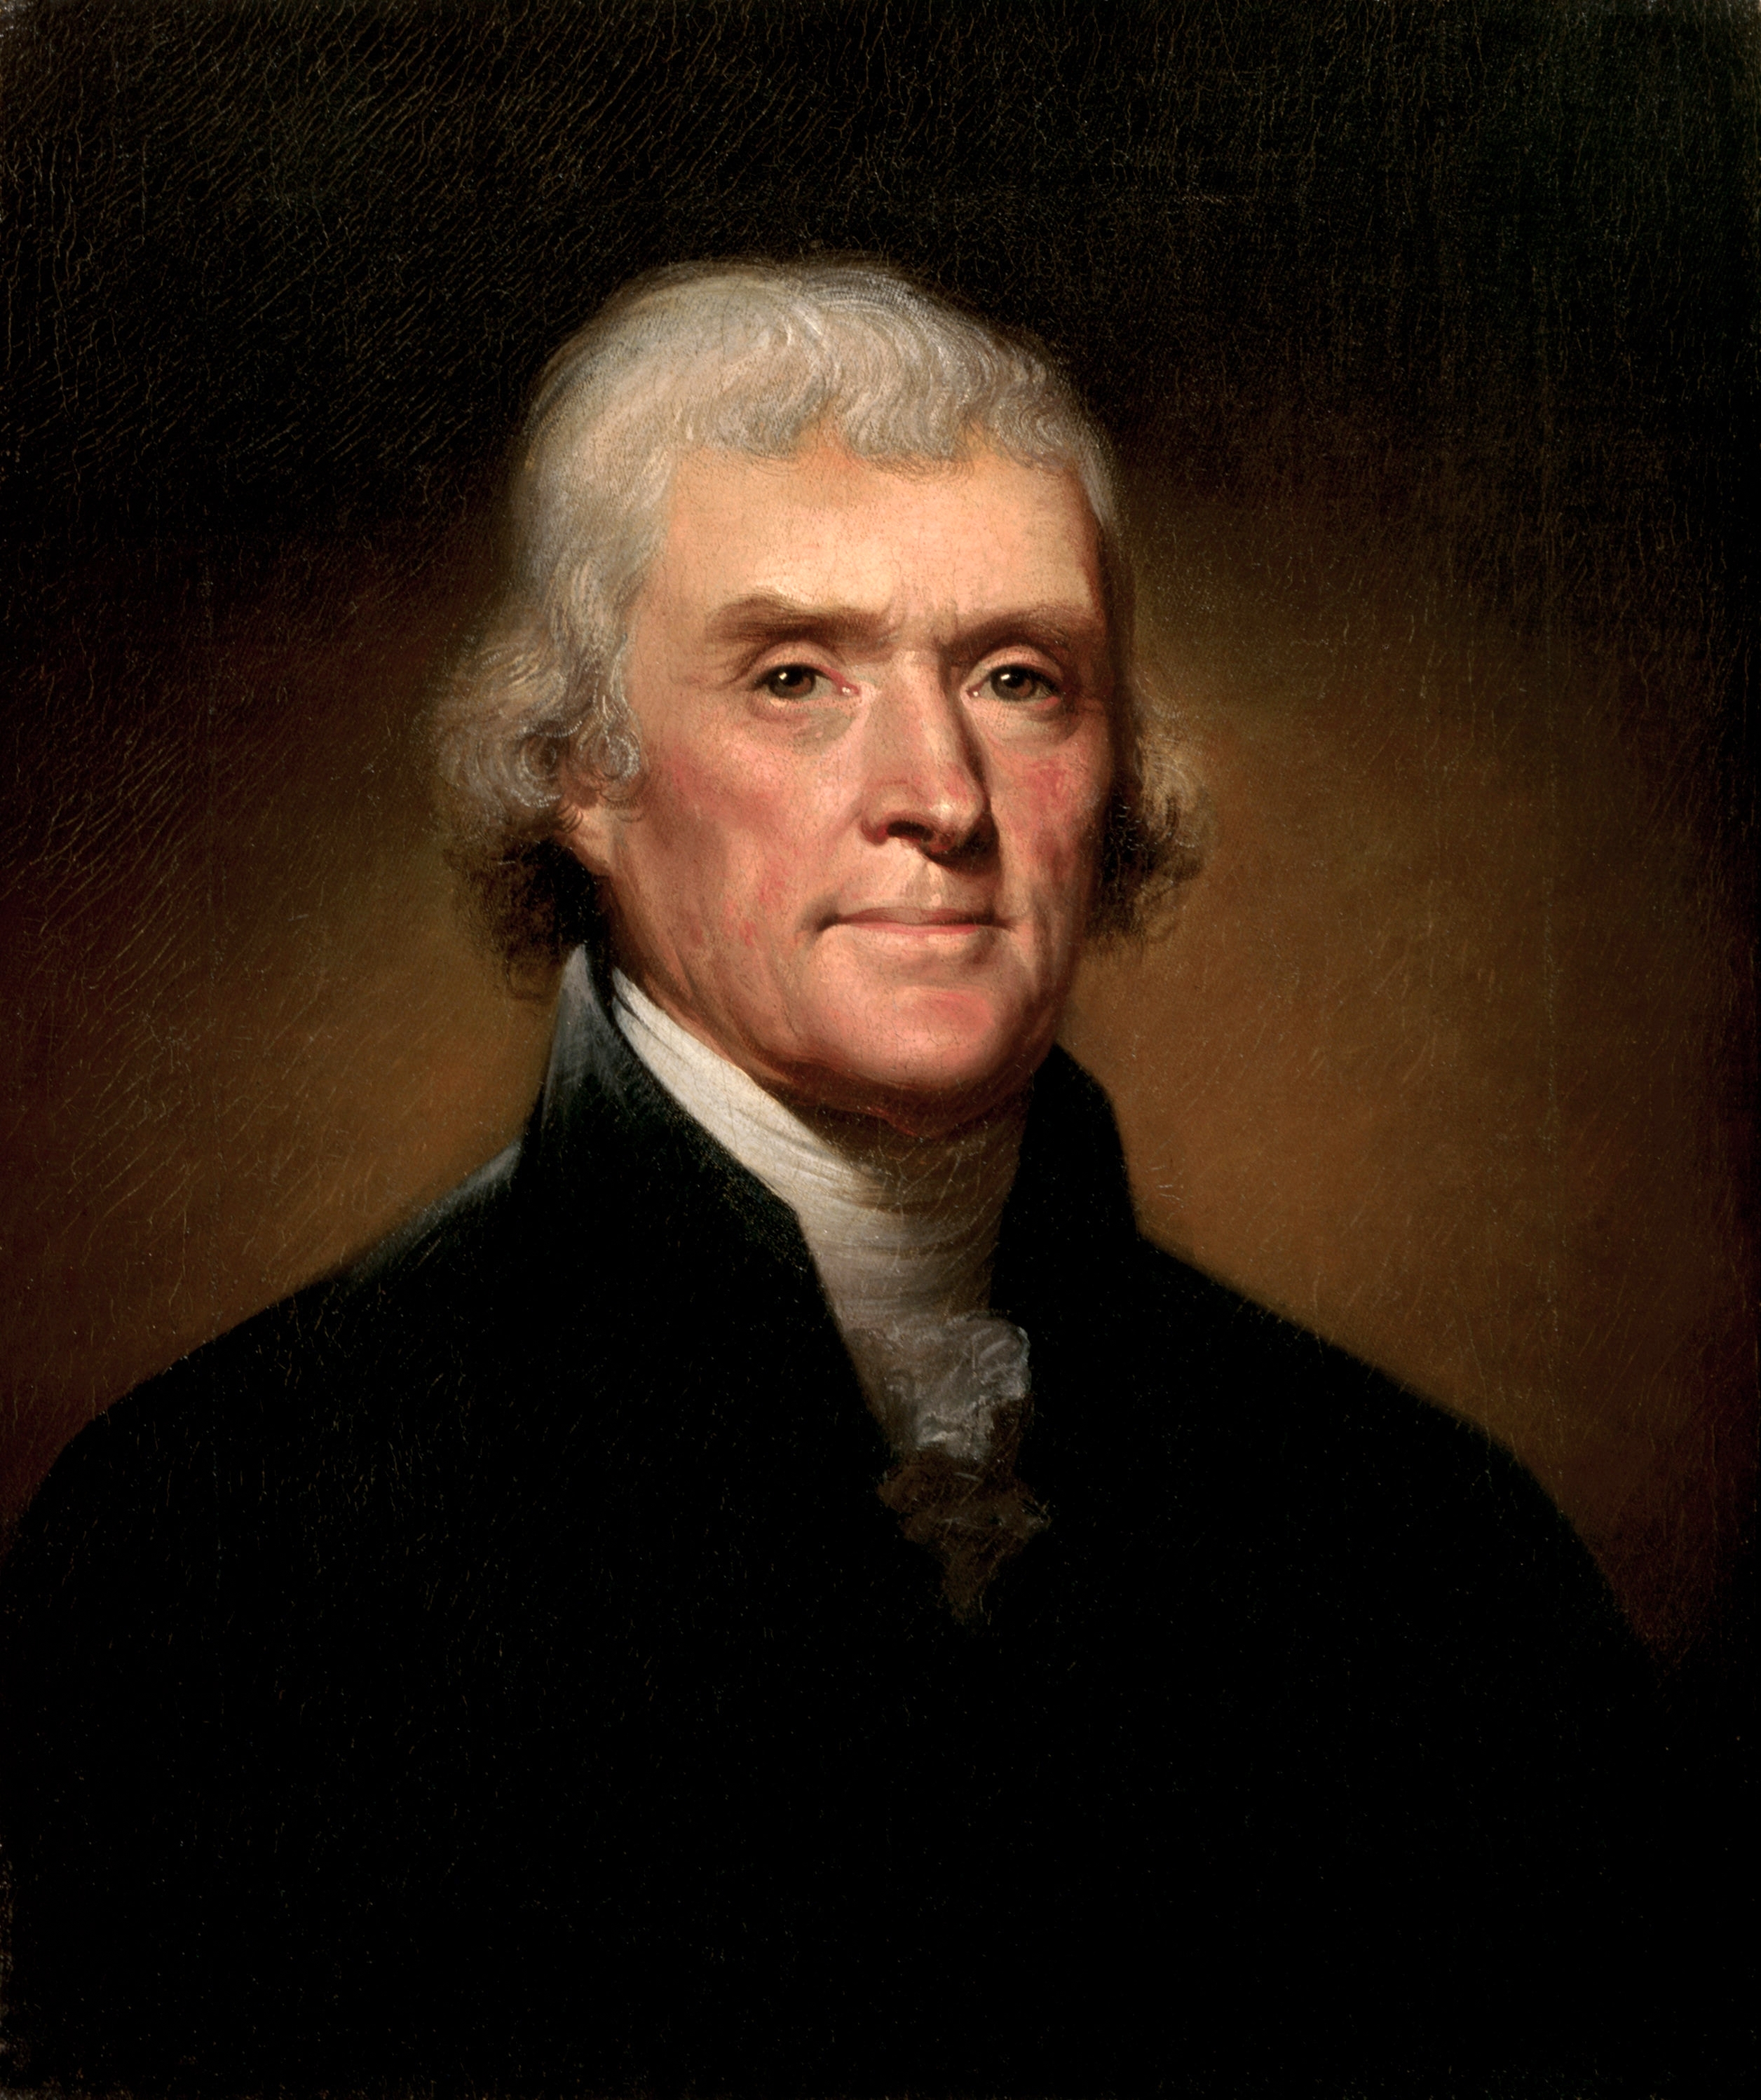 Thomas Jefferson by Rembrandt Peale. Photo credit: Wikimedia Commons